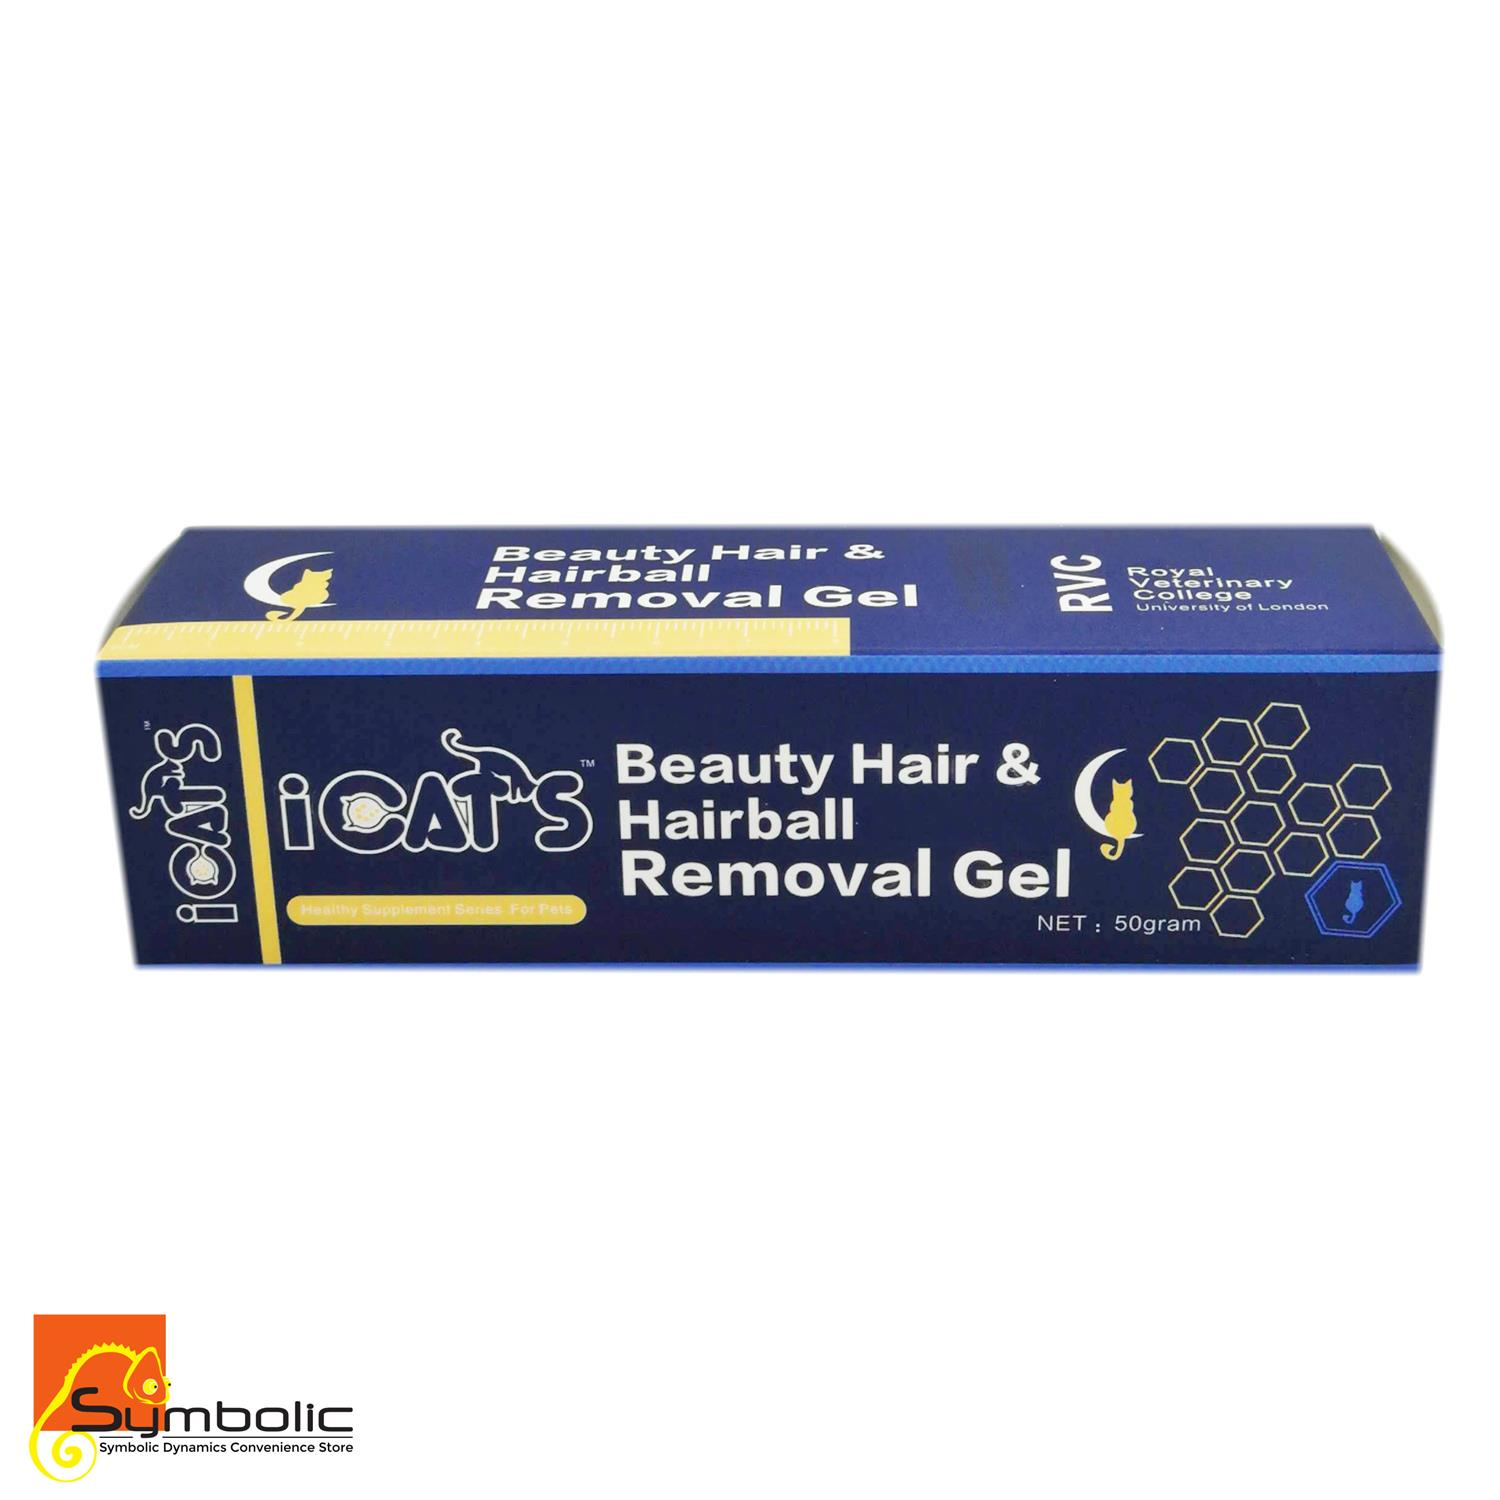 iCat's HairBall Removal Gel